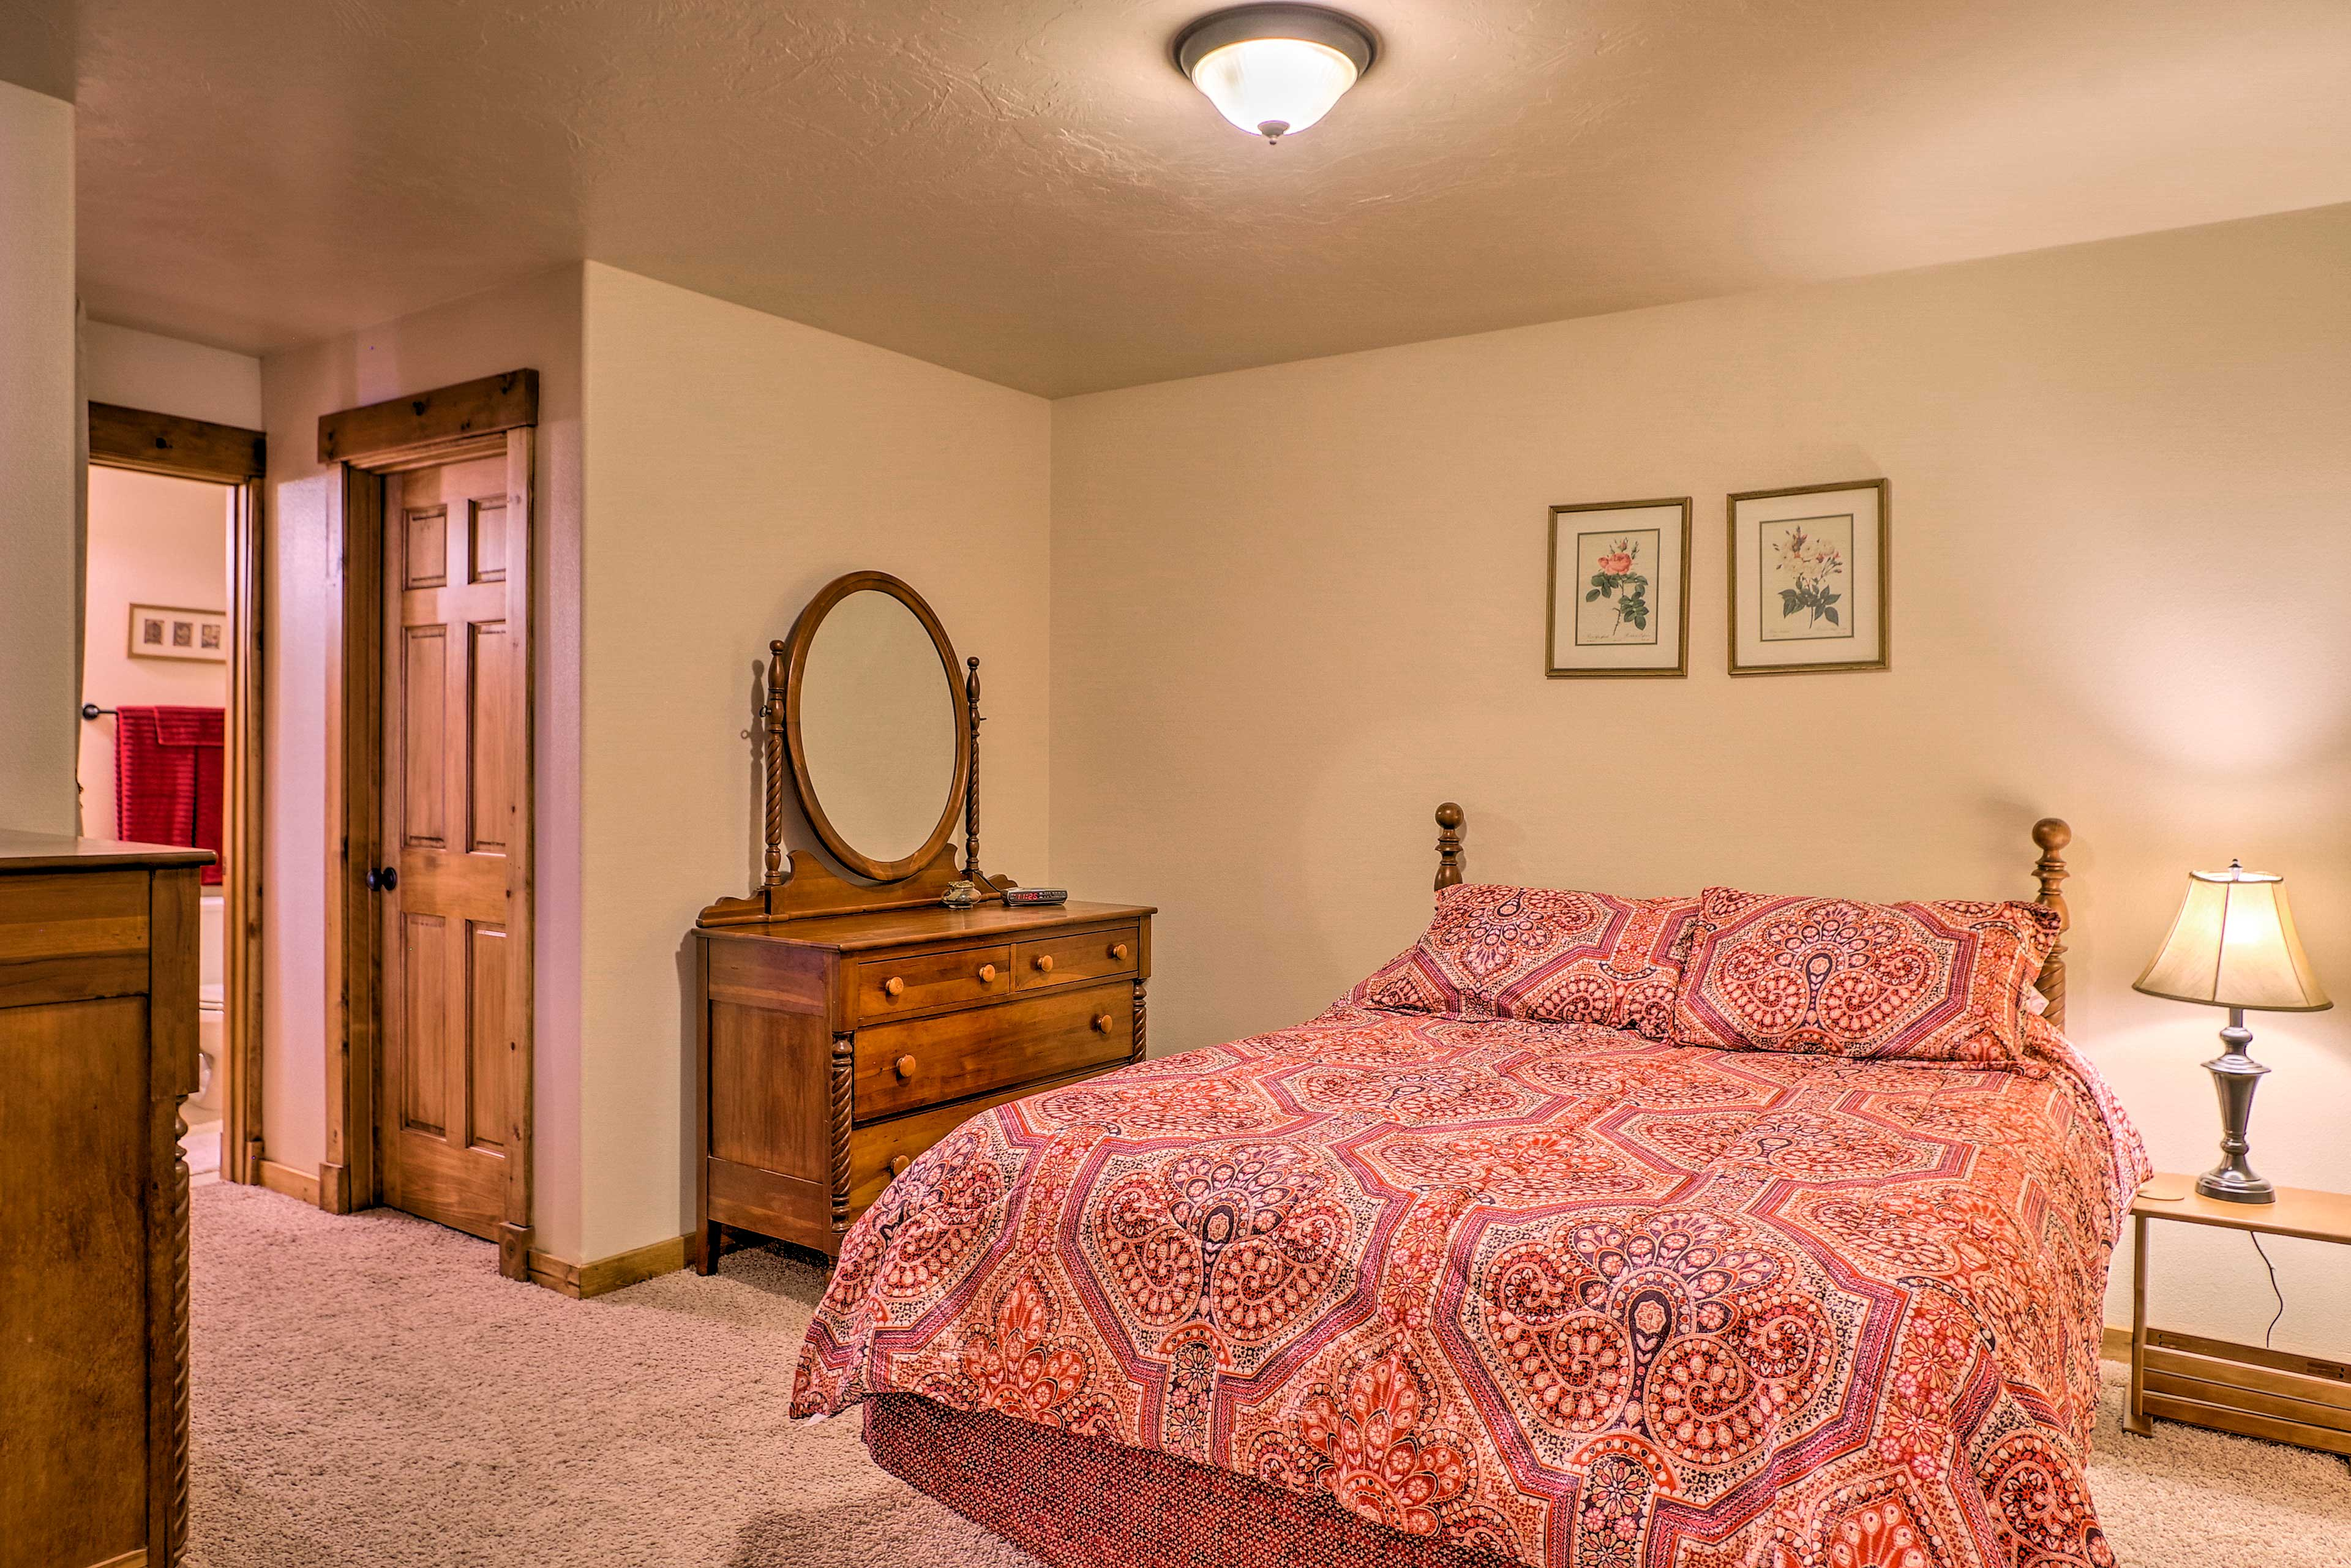 Drift off into dreamland in the master suite's queen-sized bed.